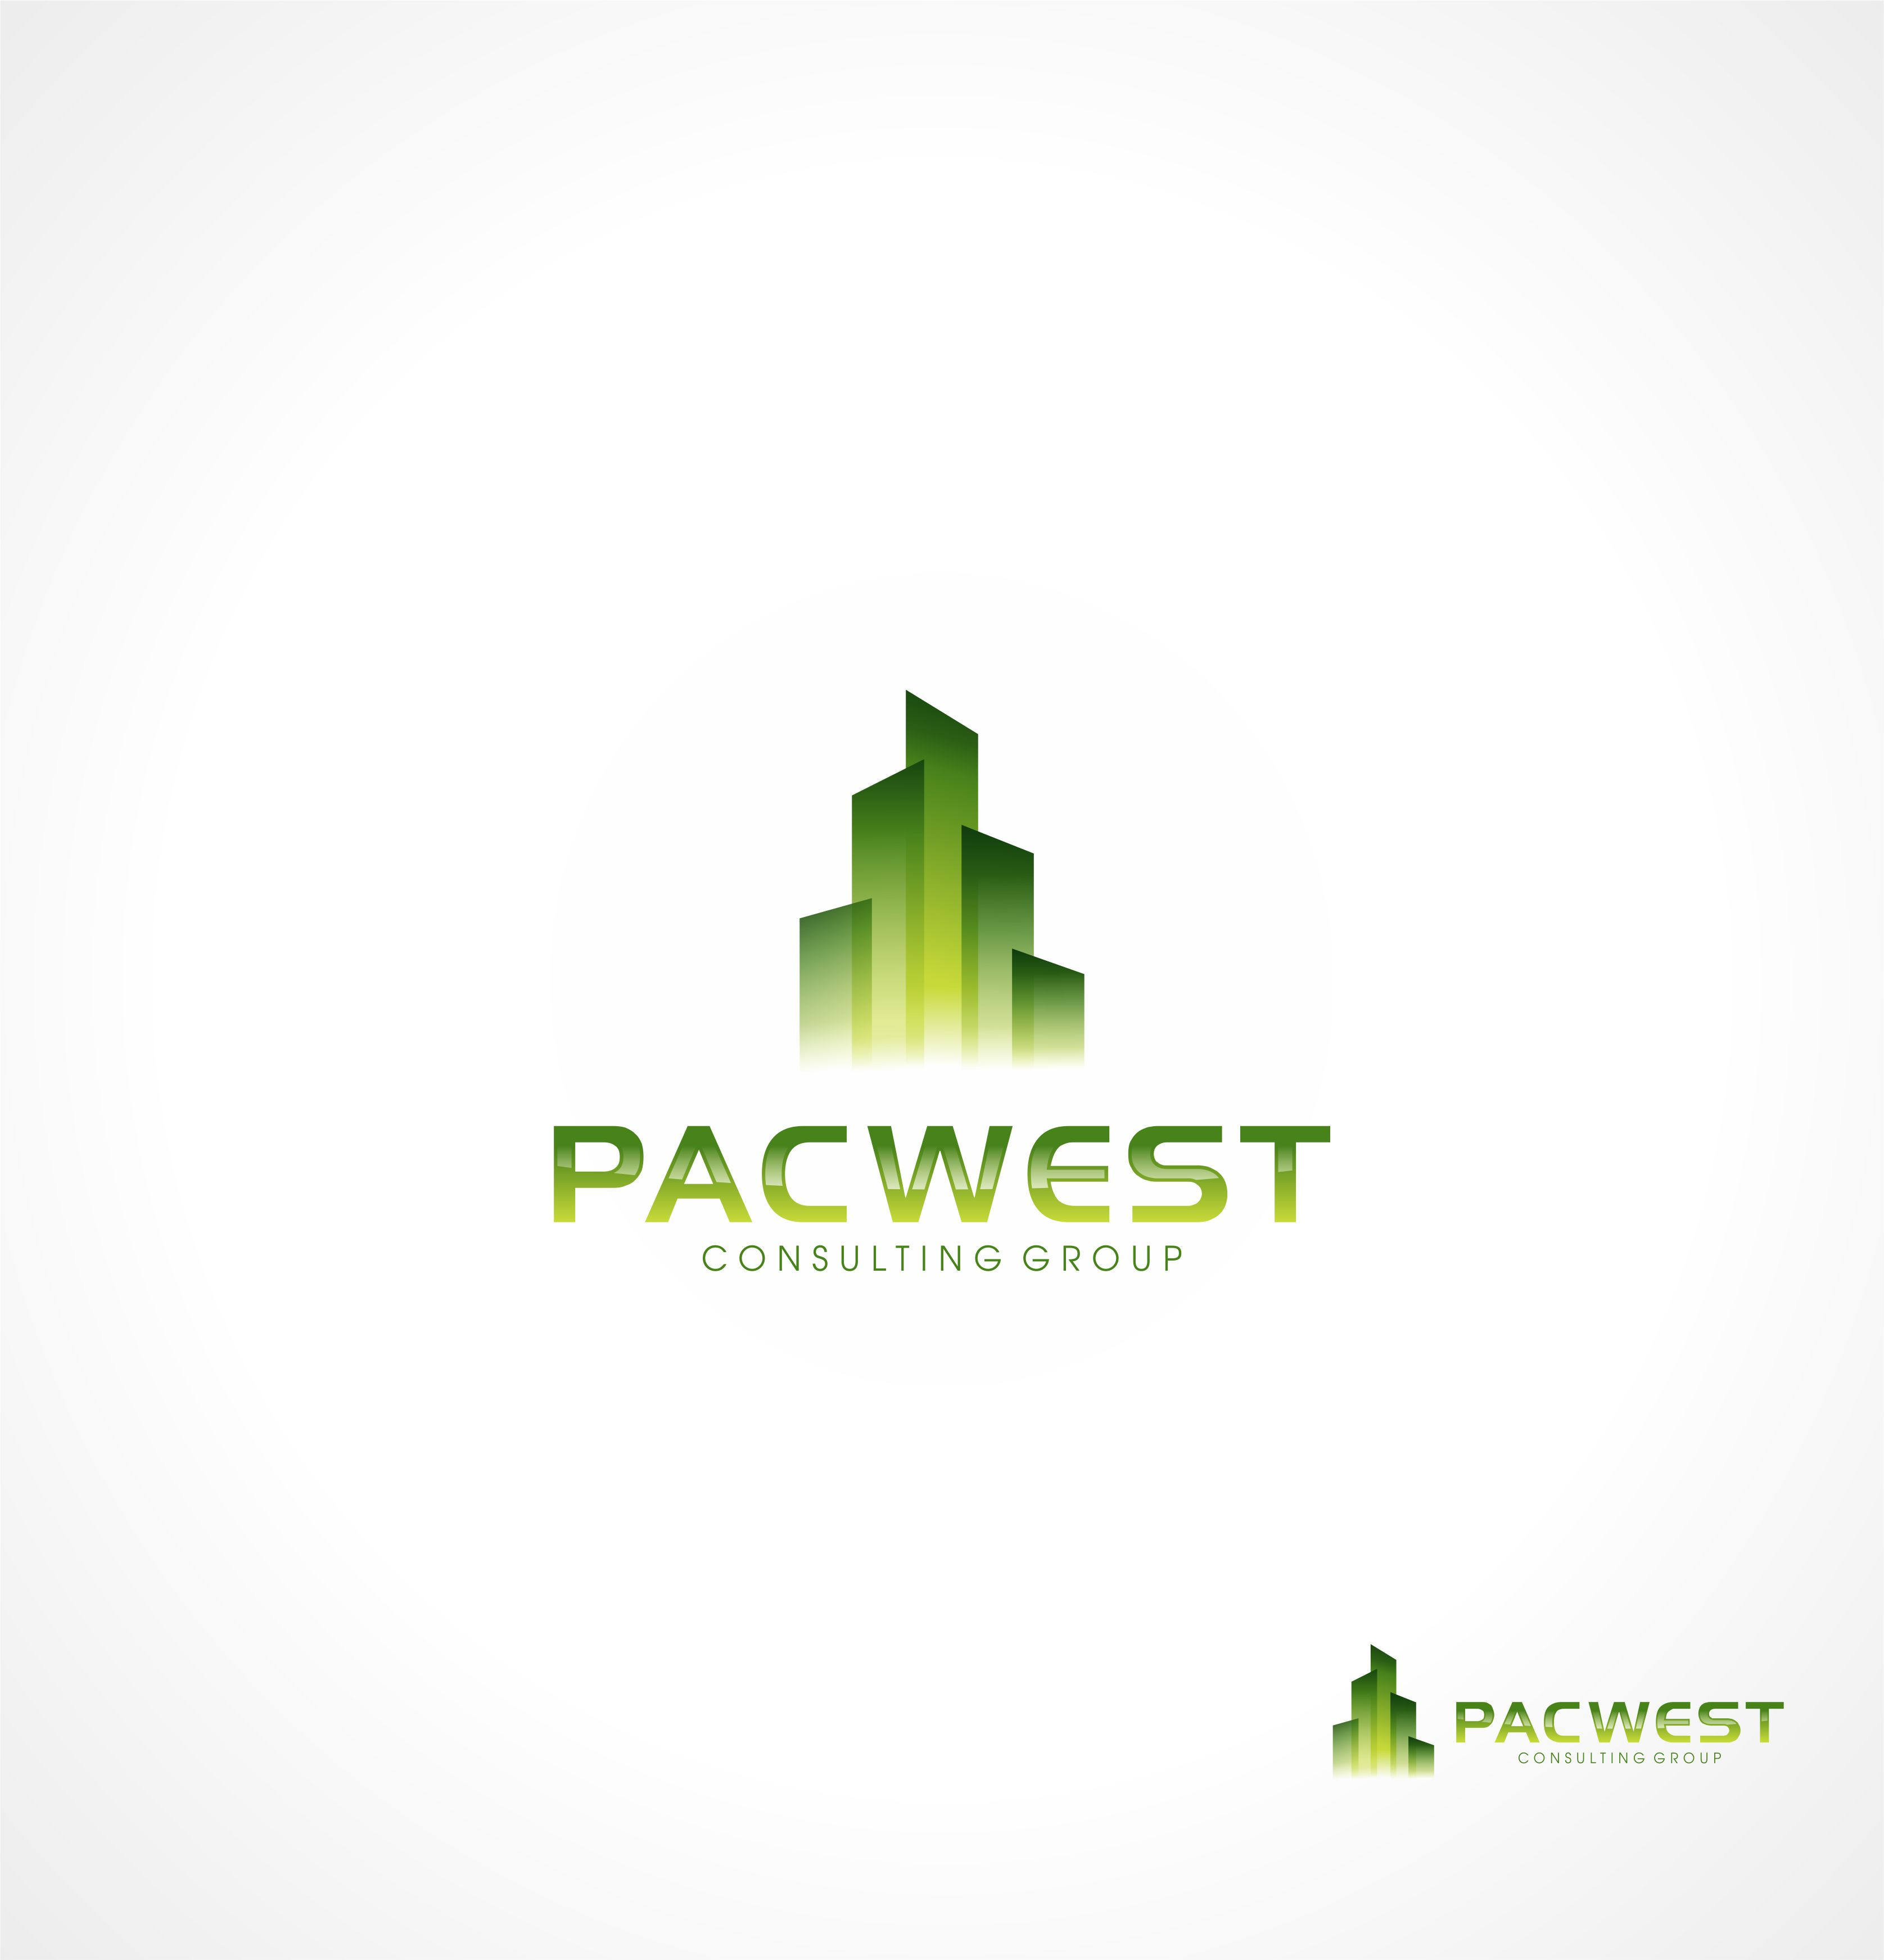 Logo Design by Raymond Garcia - Entry No. 1 in the Logo Design Contest Imaginative Logo Design for Pacwest Consulting Group.